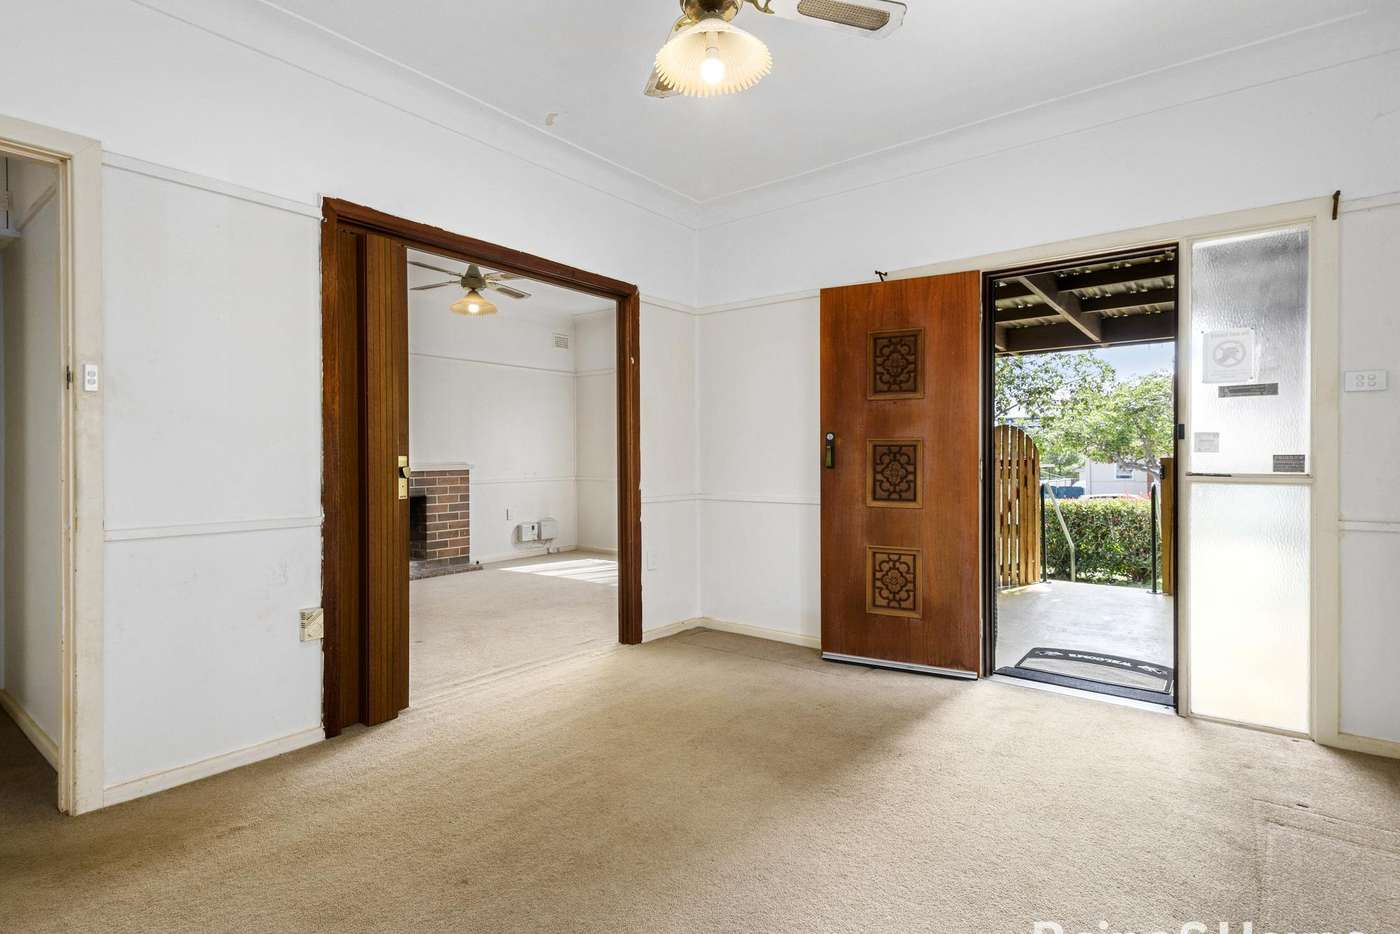 Seventh view of Homely house listing, 96 Derby Street, Penrith NSW 2750